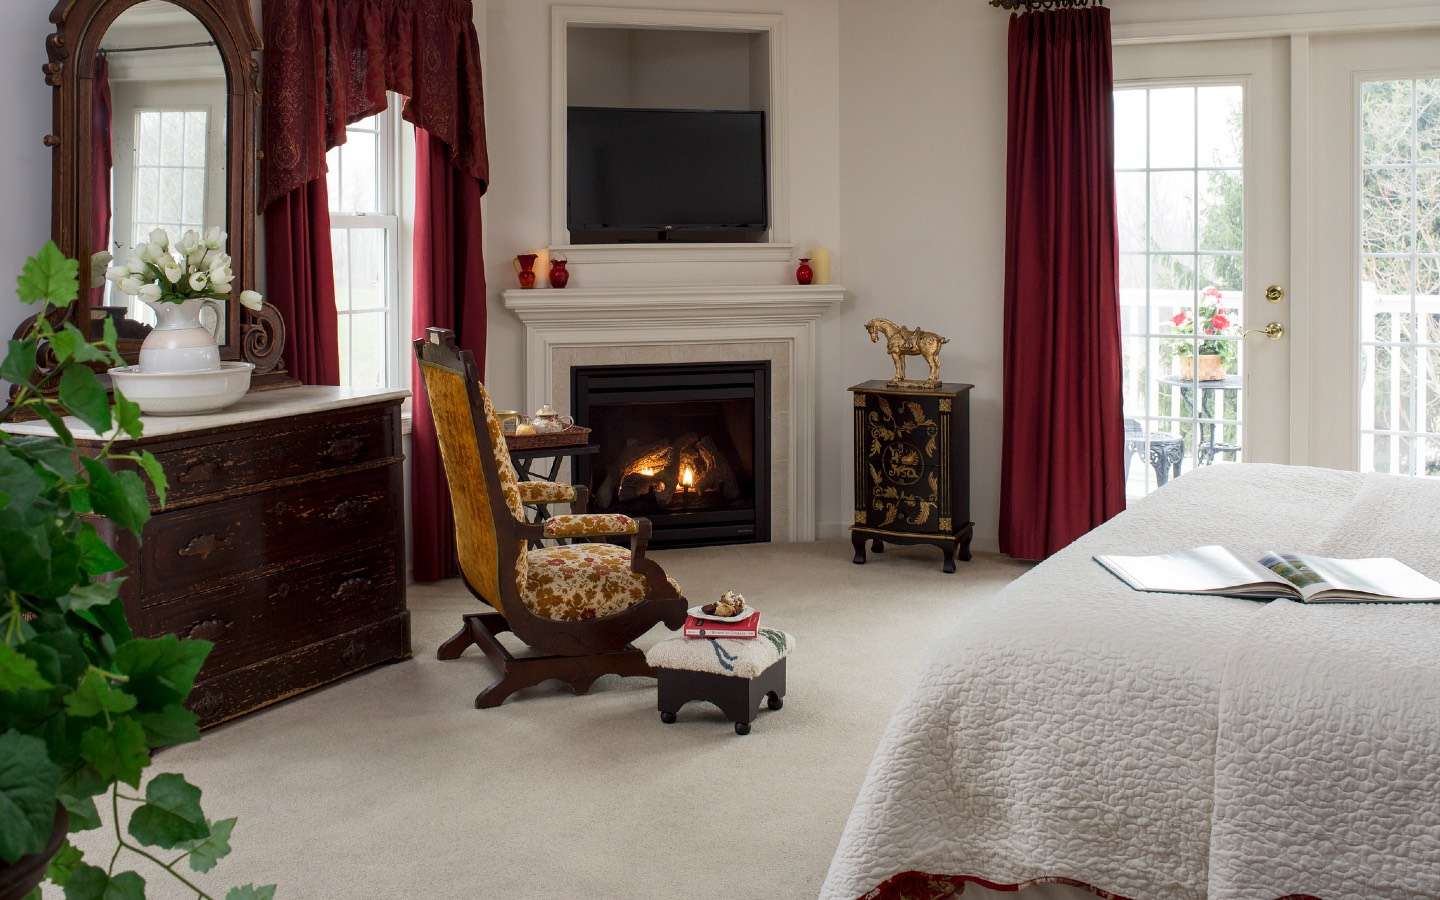 Hershey PA Bed and Breakfast Suite for Fall Getaway